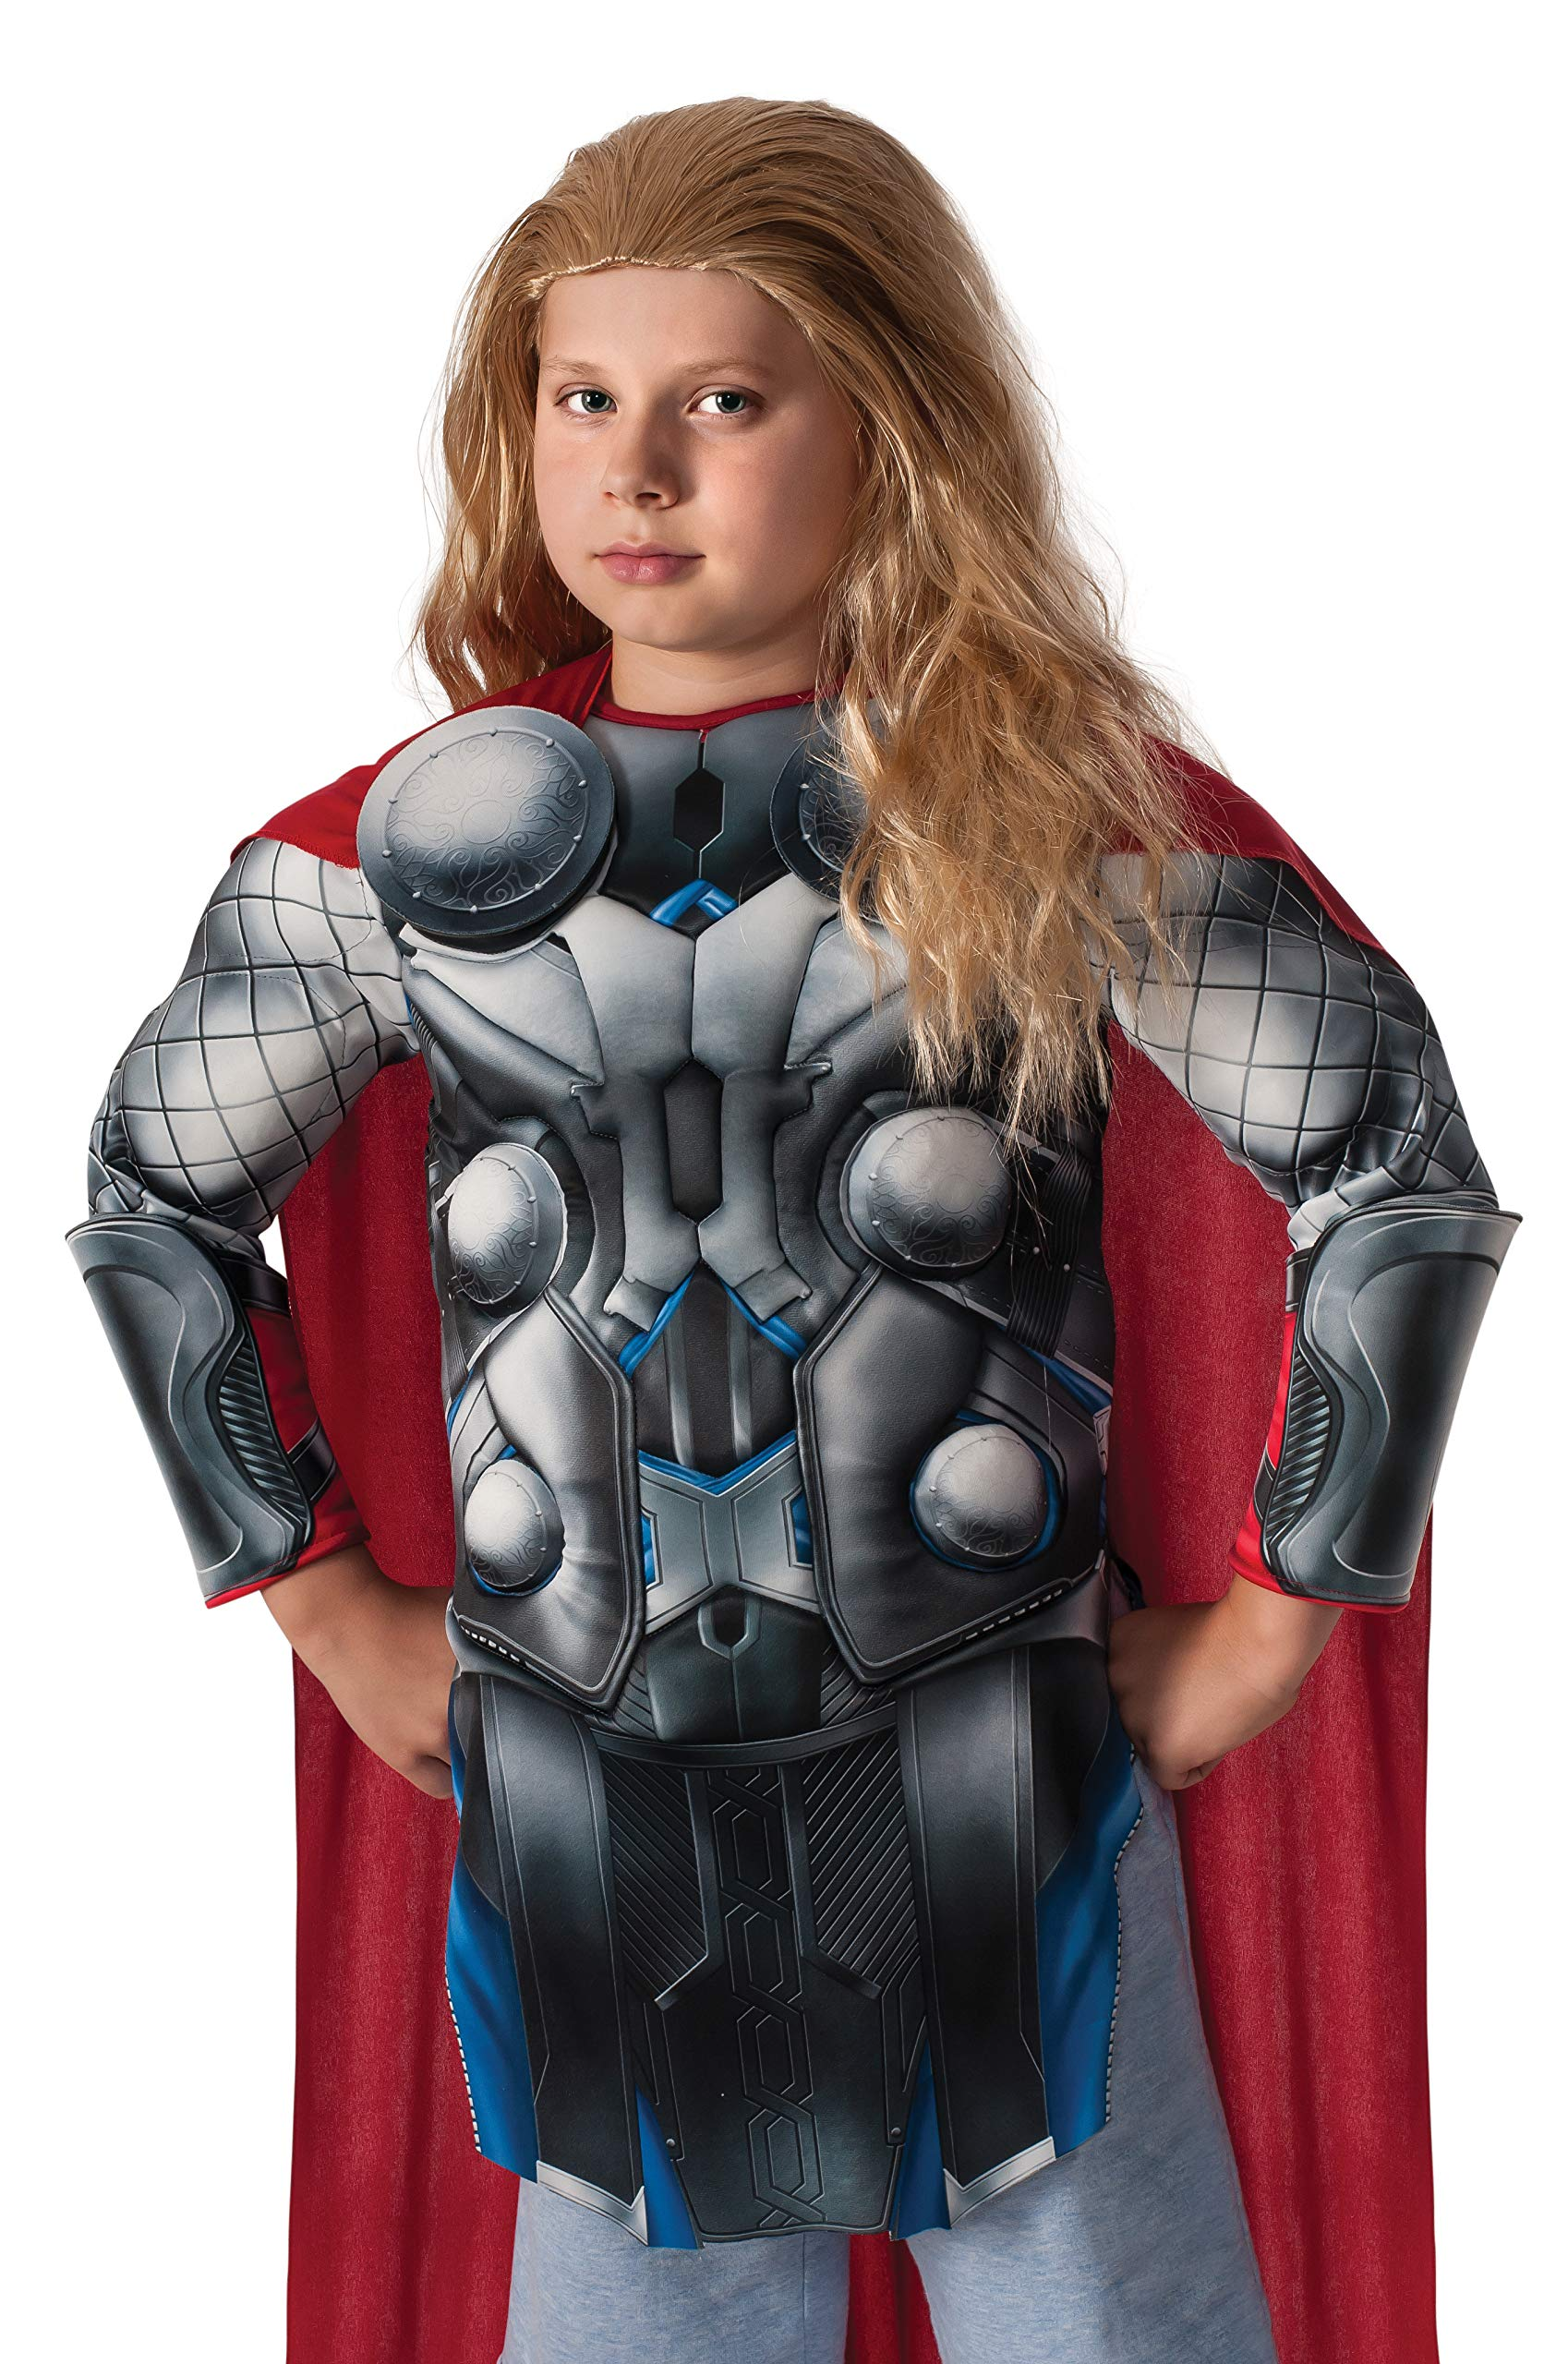 Avengers 2 Age of Ultron Child's Thor Wig by Rubie's